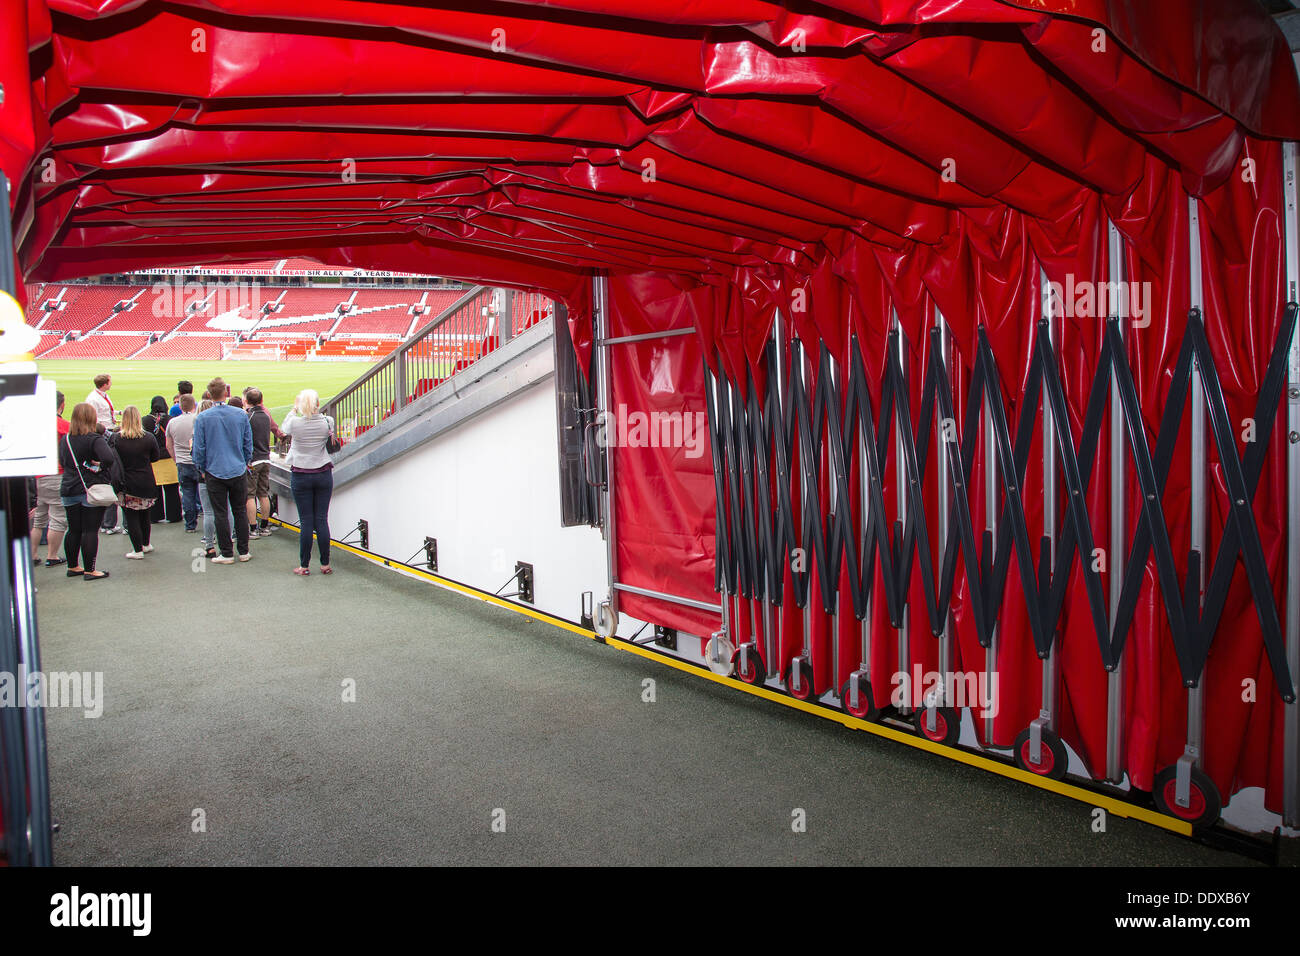 Football tunnel at Old Trafford stadium, Manchester United's home ground, during an Old Trafford Tour. - Stock Image